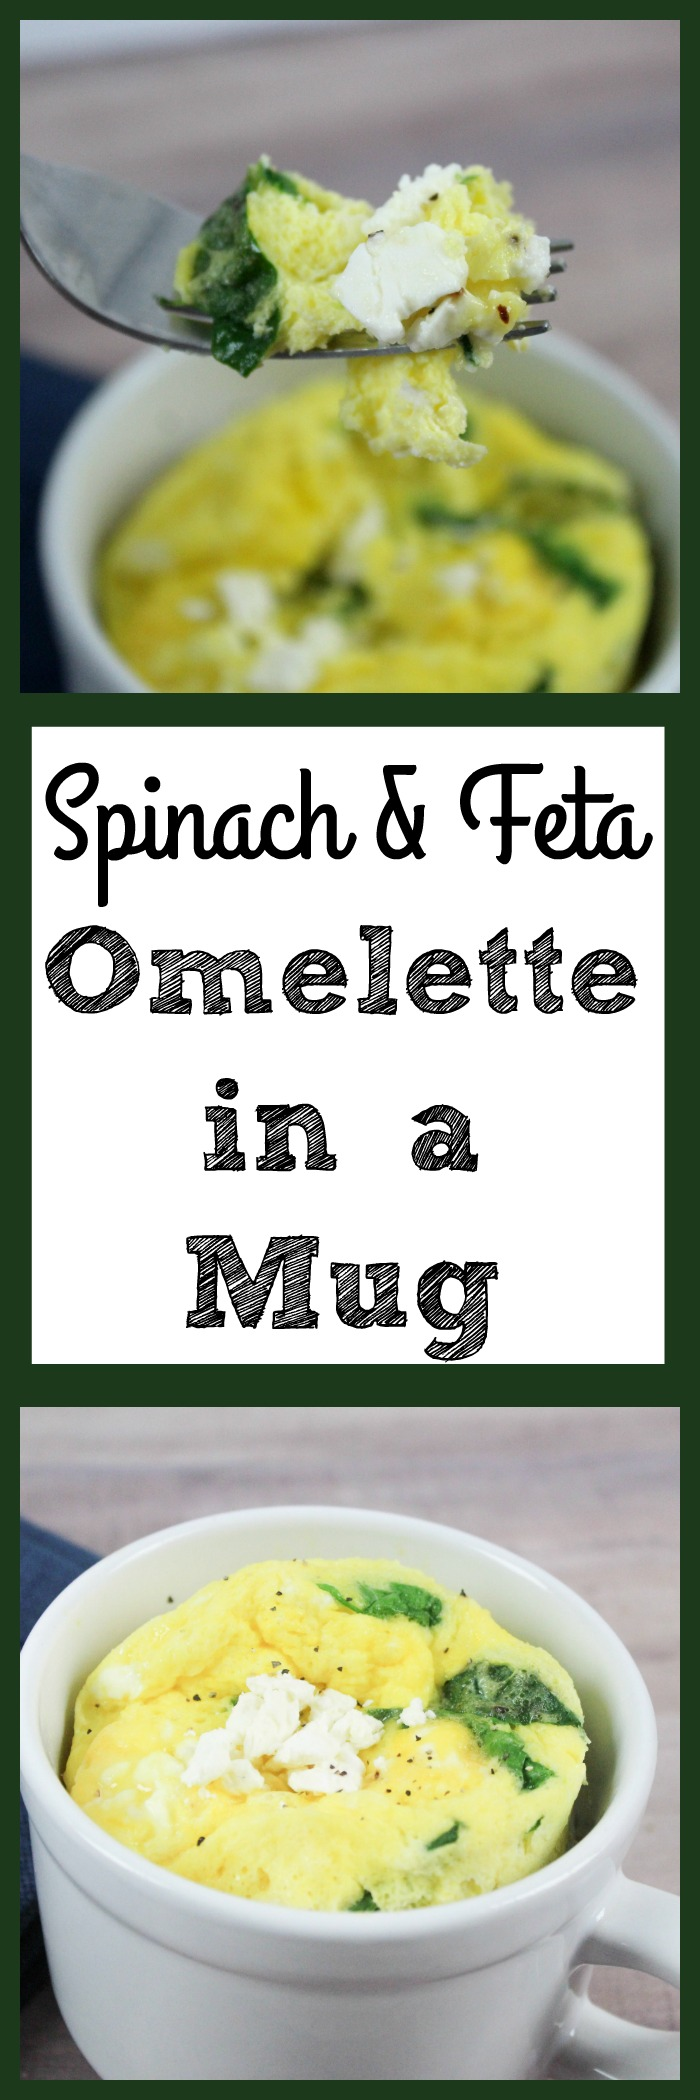 Breakfast is very important. Mornings are hard when you are short on time. Omelette in a mug is a quick breakfast idea. Spinach & feta omelette in a mug